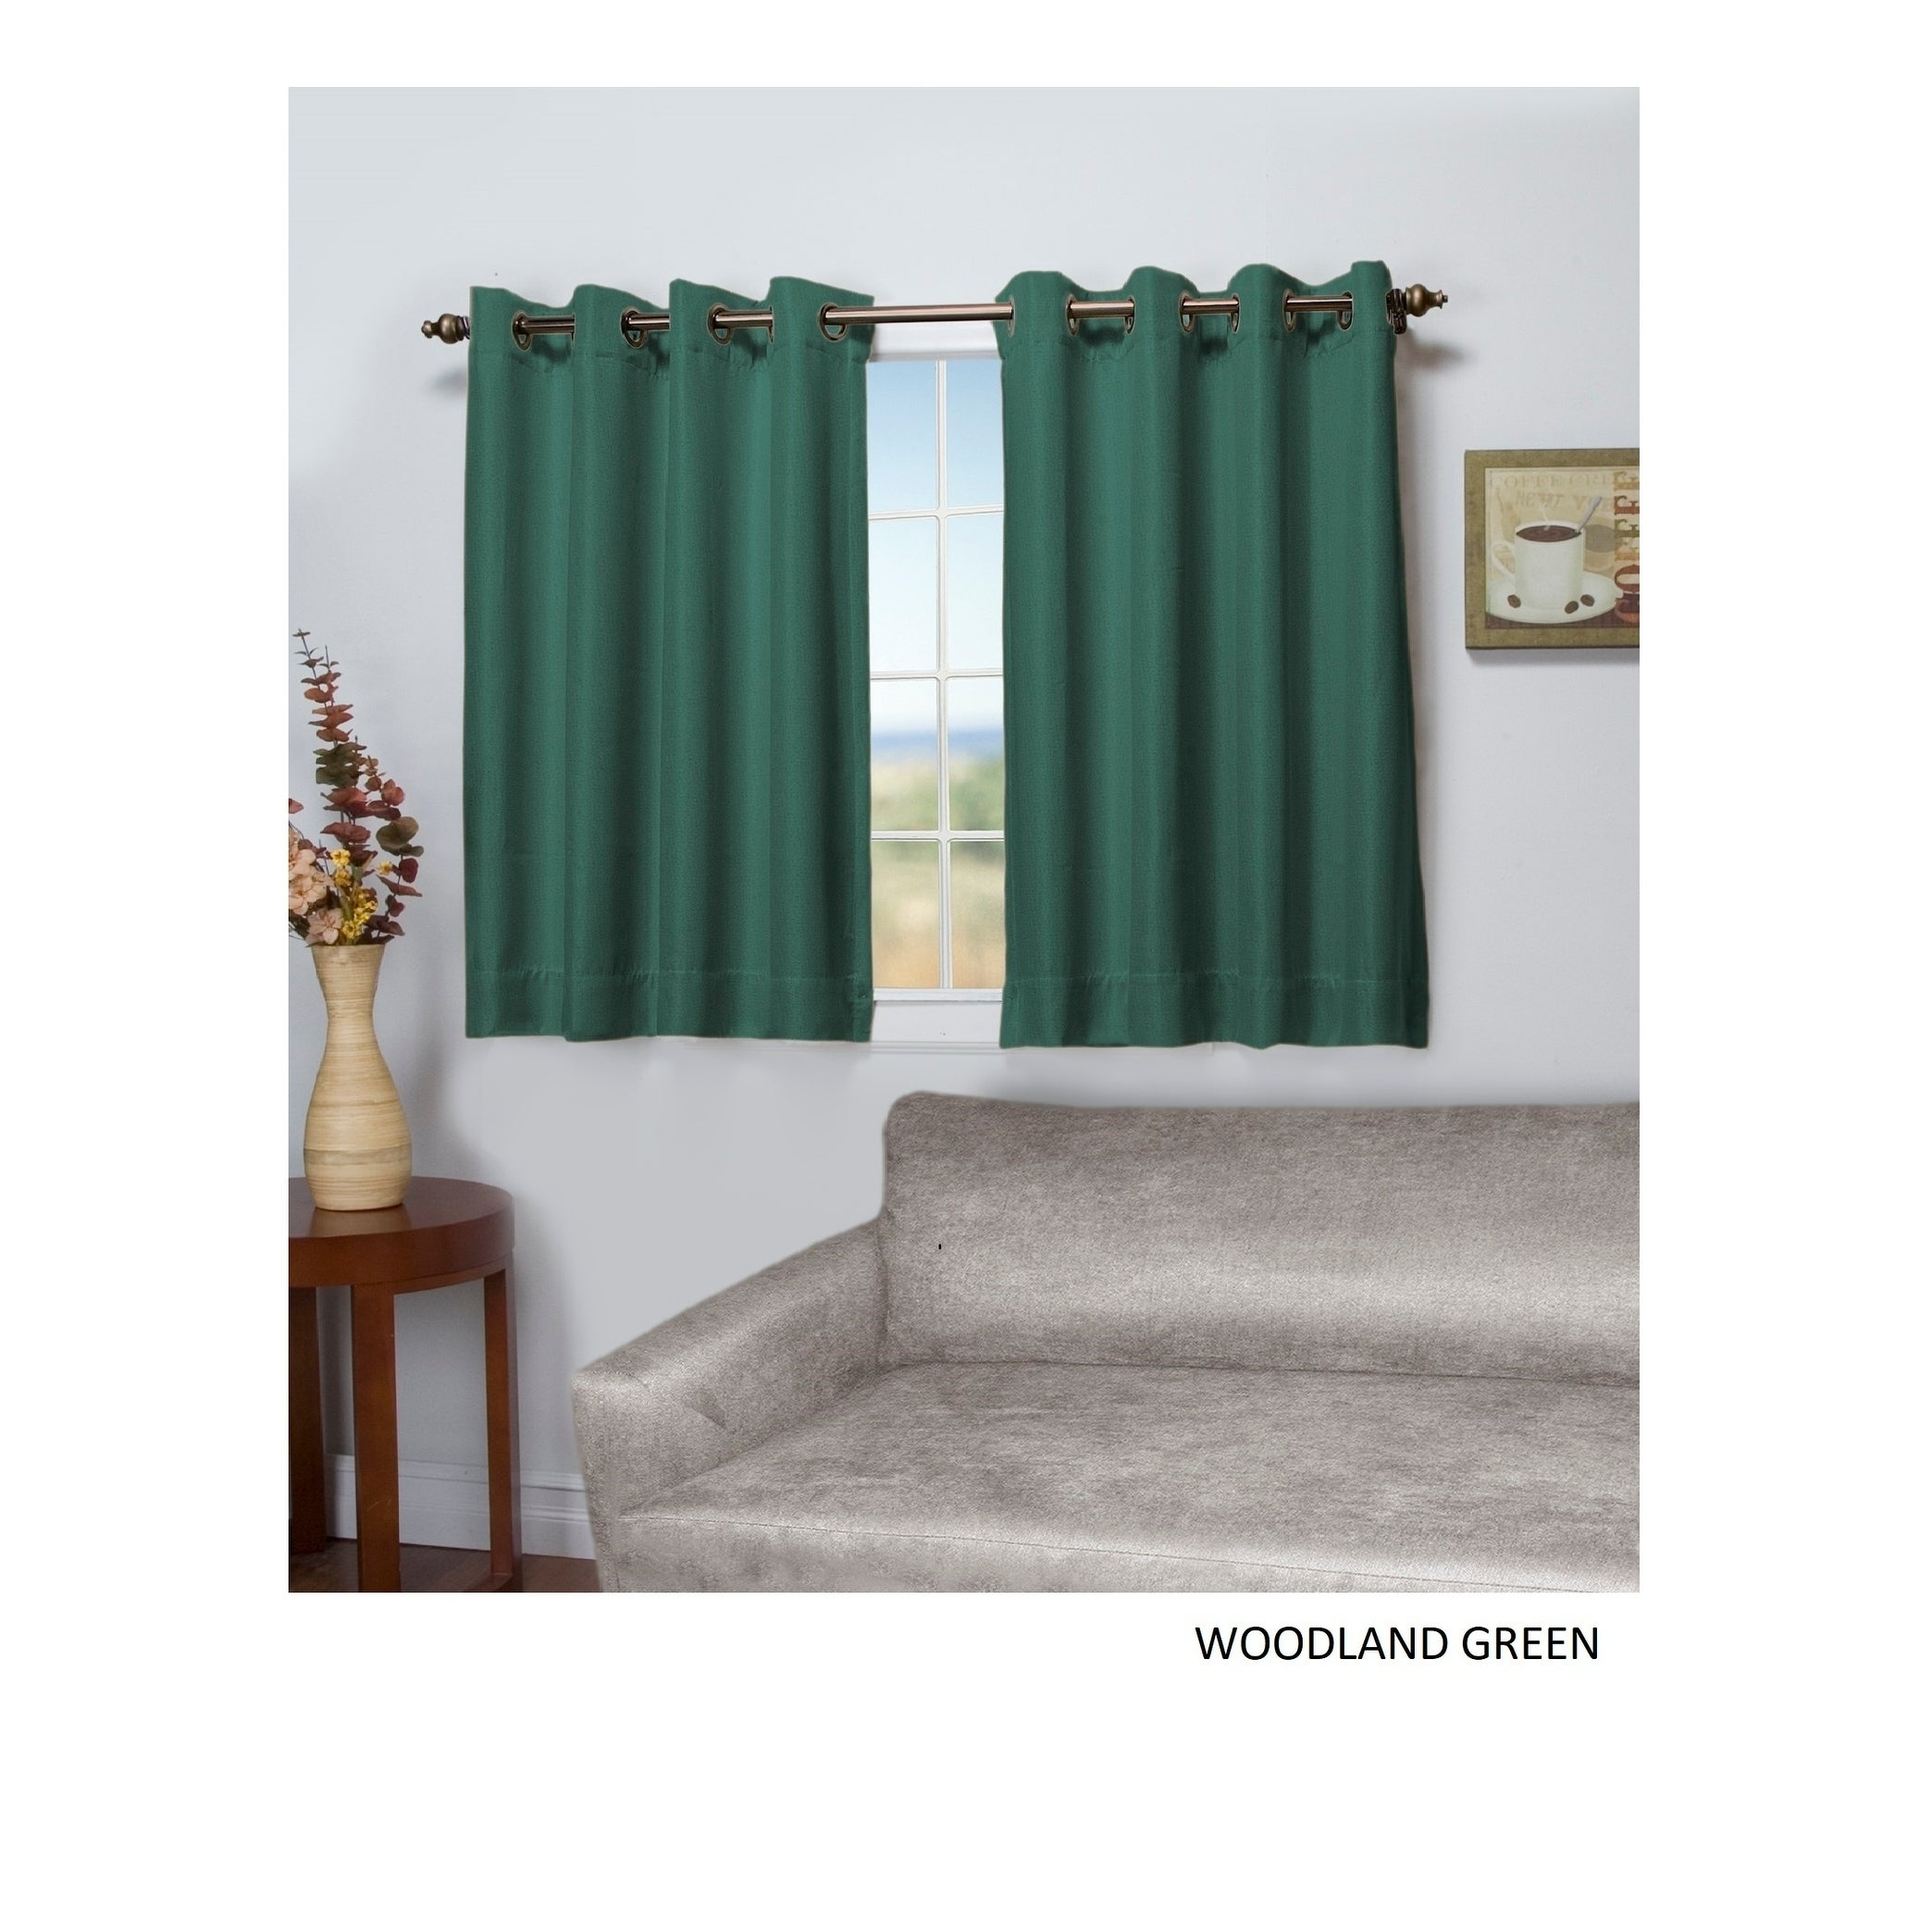 Tacoma Double-Blackout Grommet Curtain Panel - Short Length inside Tacoma Double-Blackout Grommet Curtain Panels (Image 24 of 30)